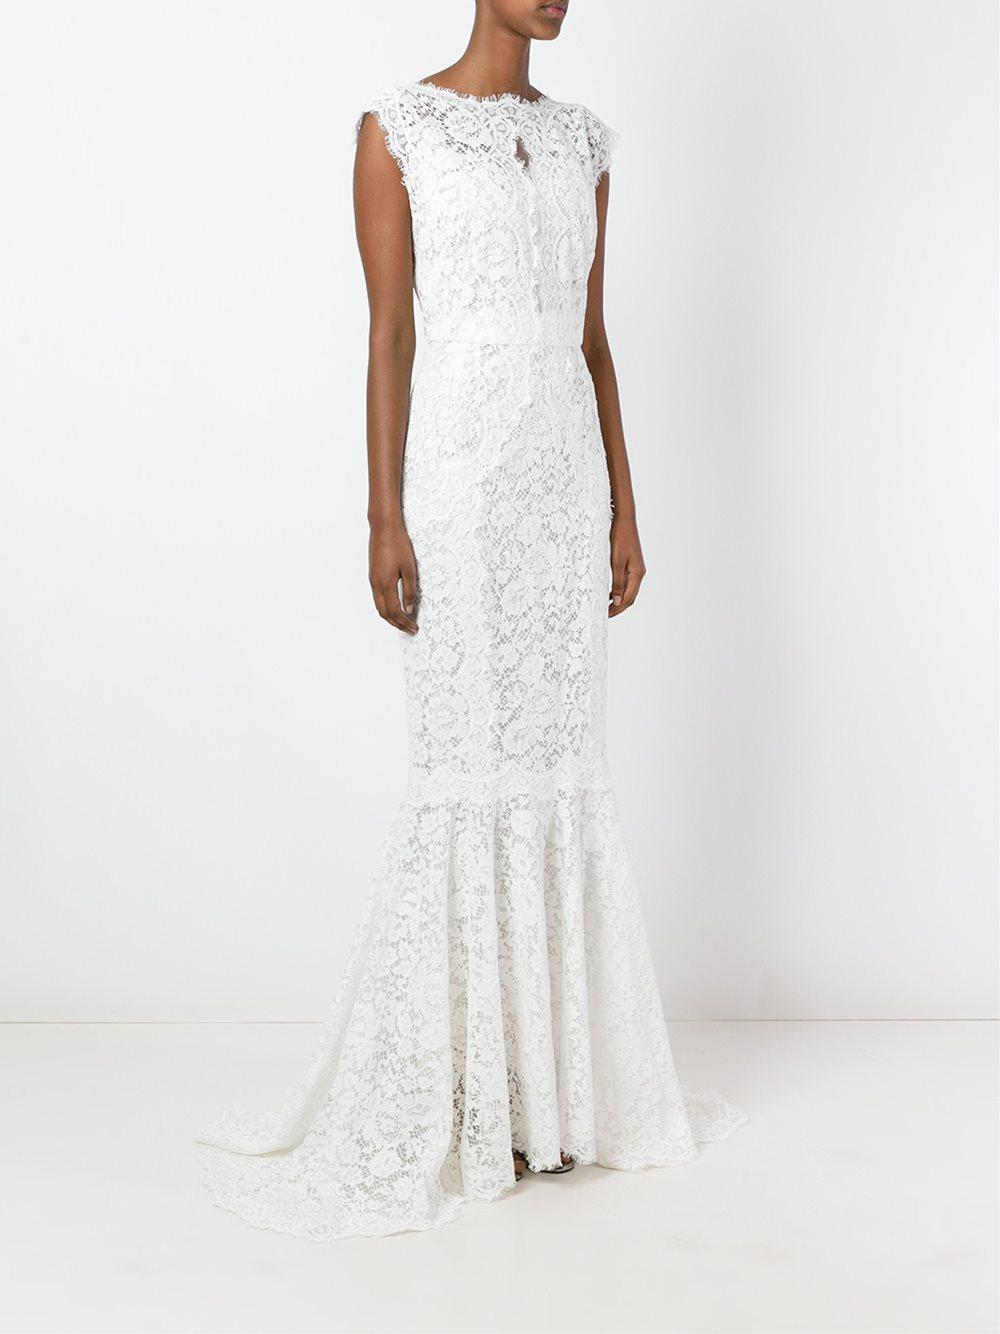 Dolce Gabbana White Lace Fish Tail Gown Lyst View Fullscreen